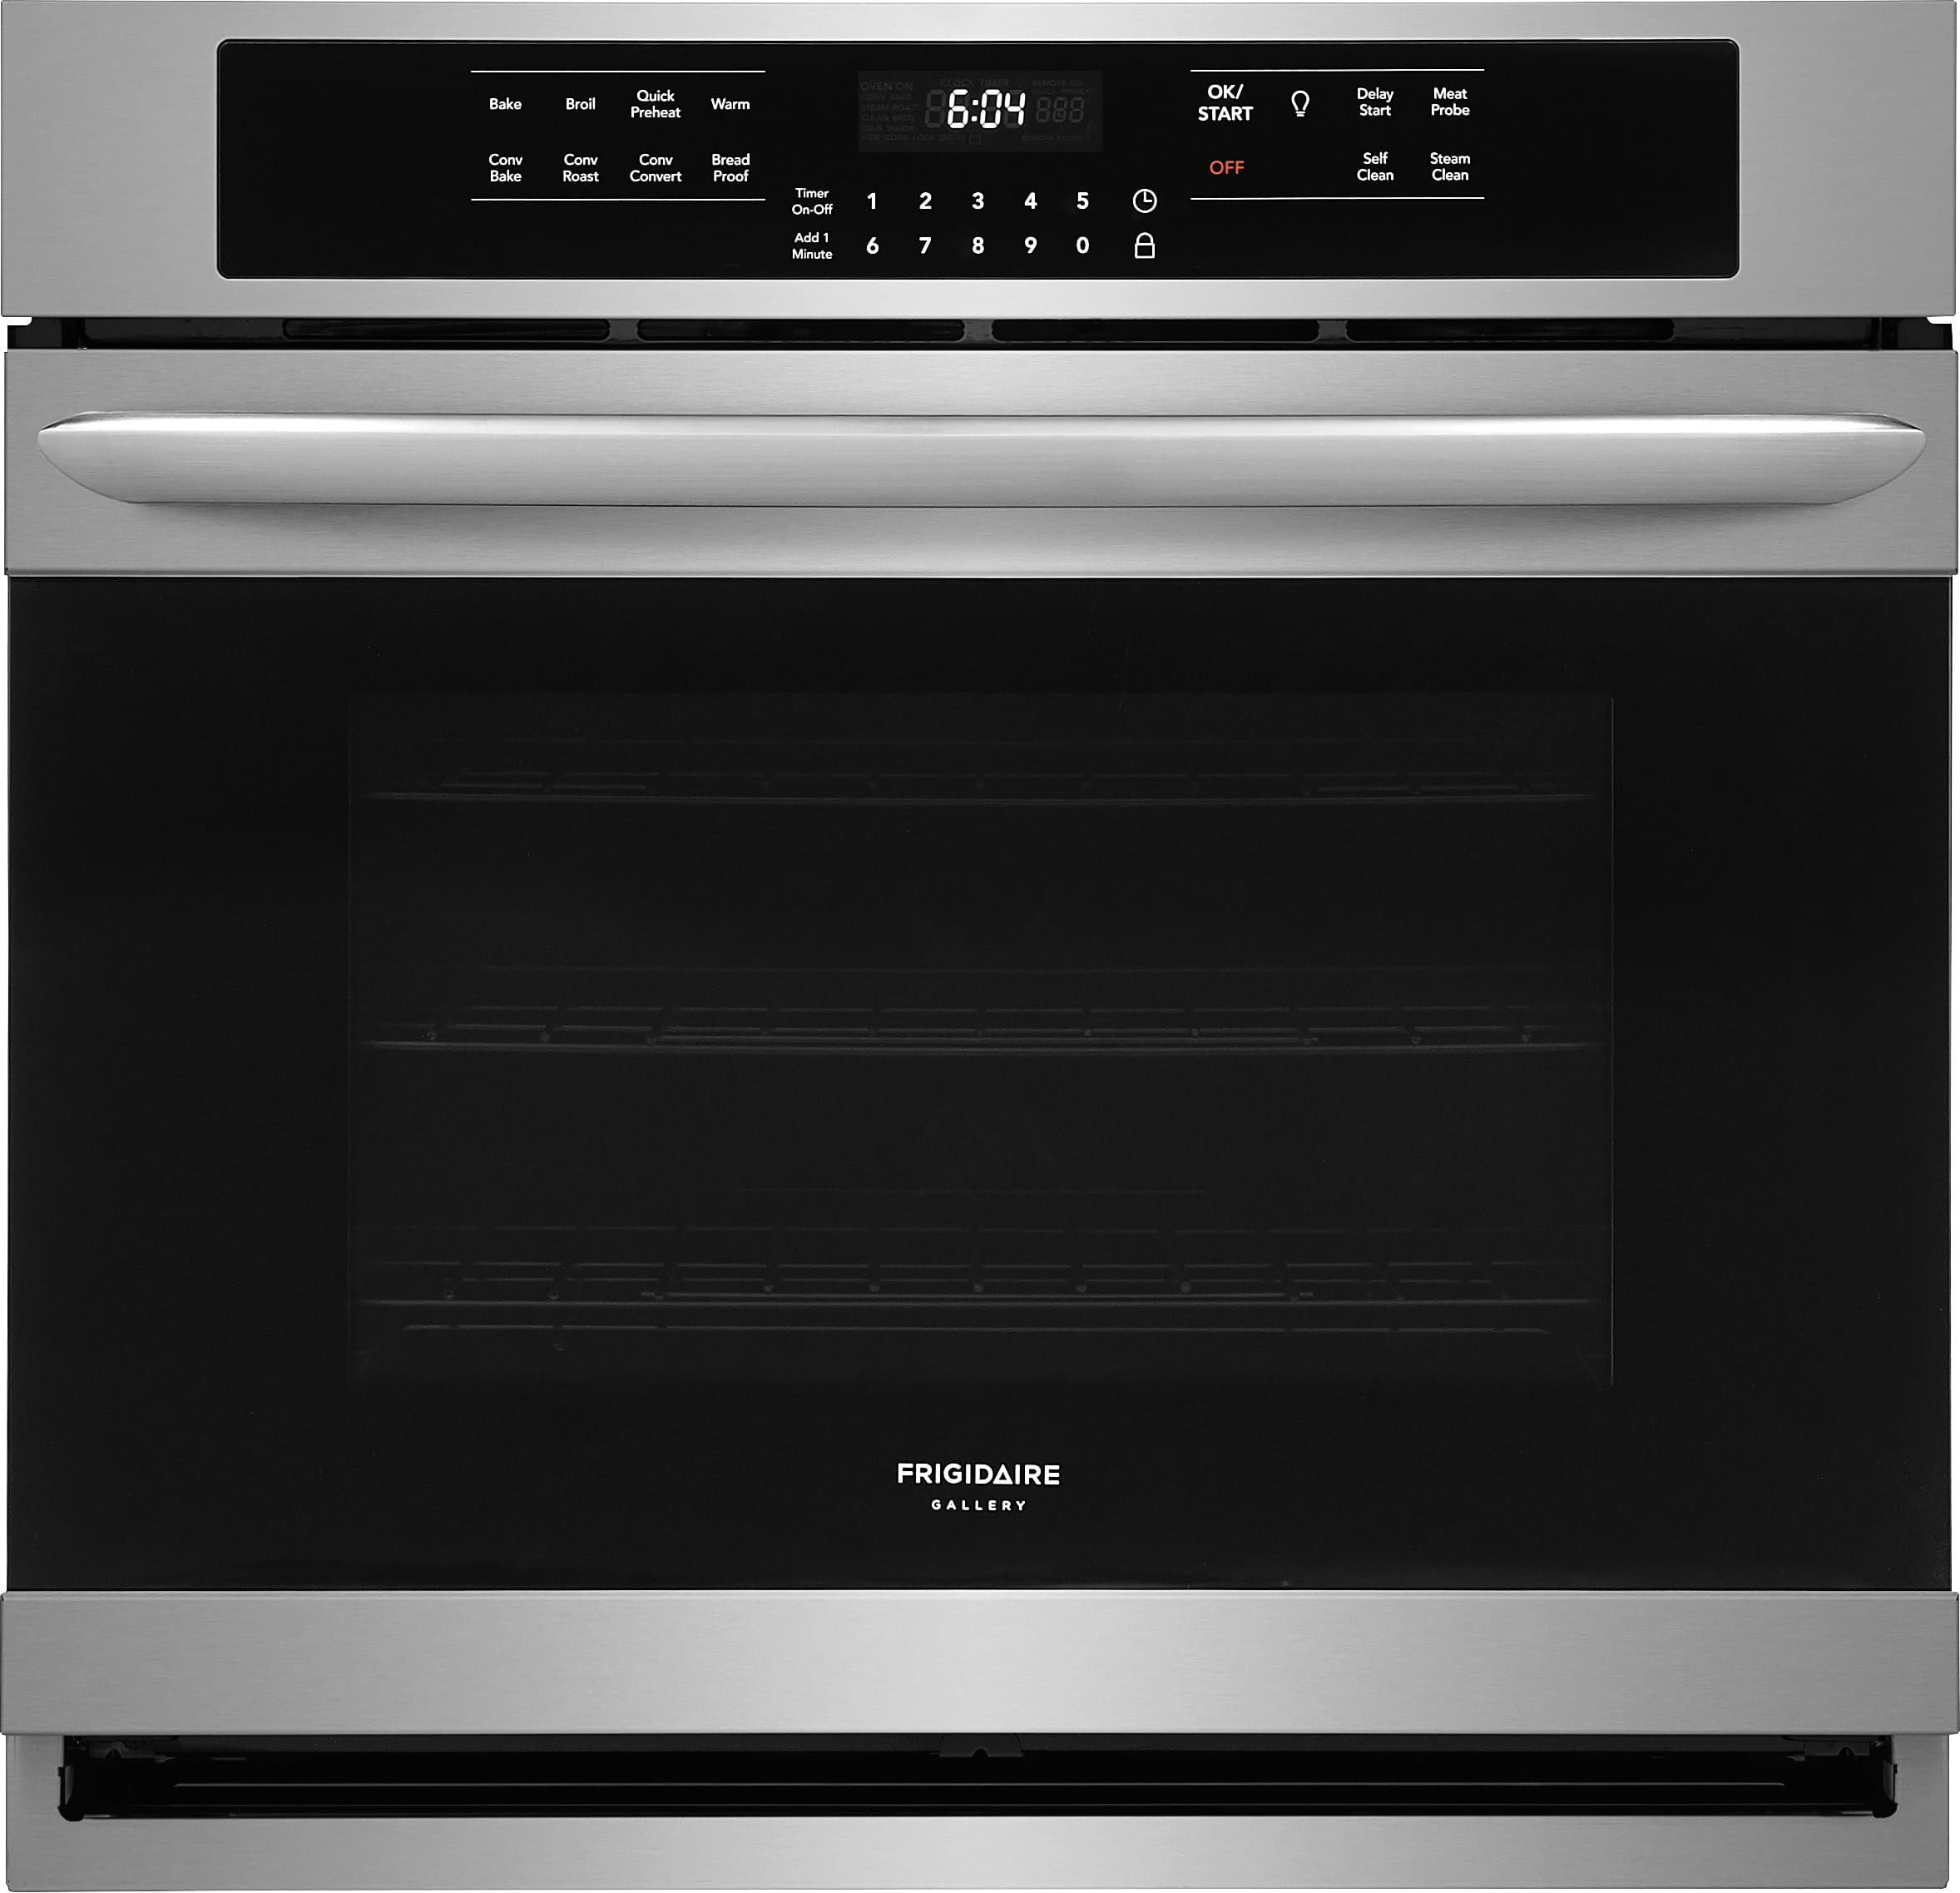 Frigidaire Bloom Brothers Supply